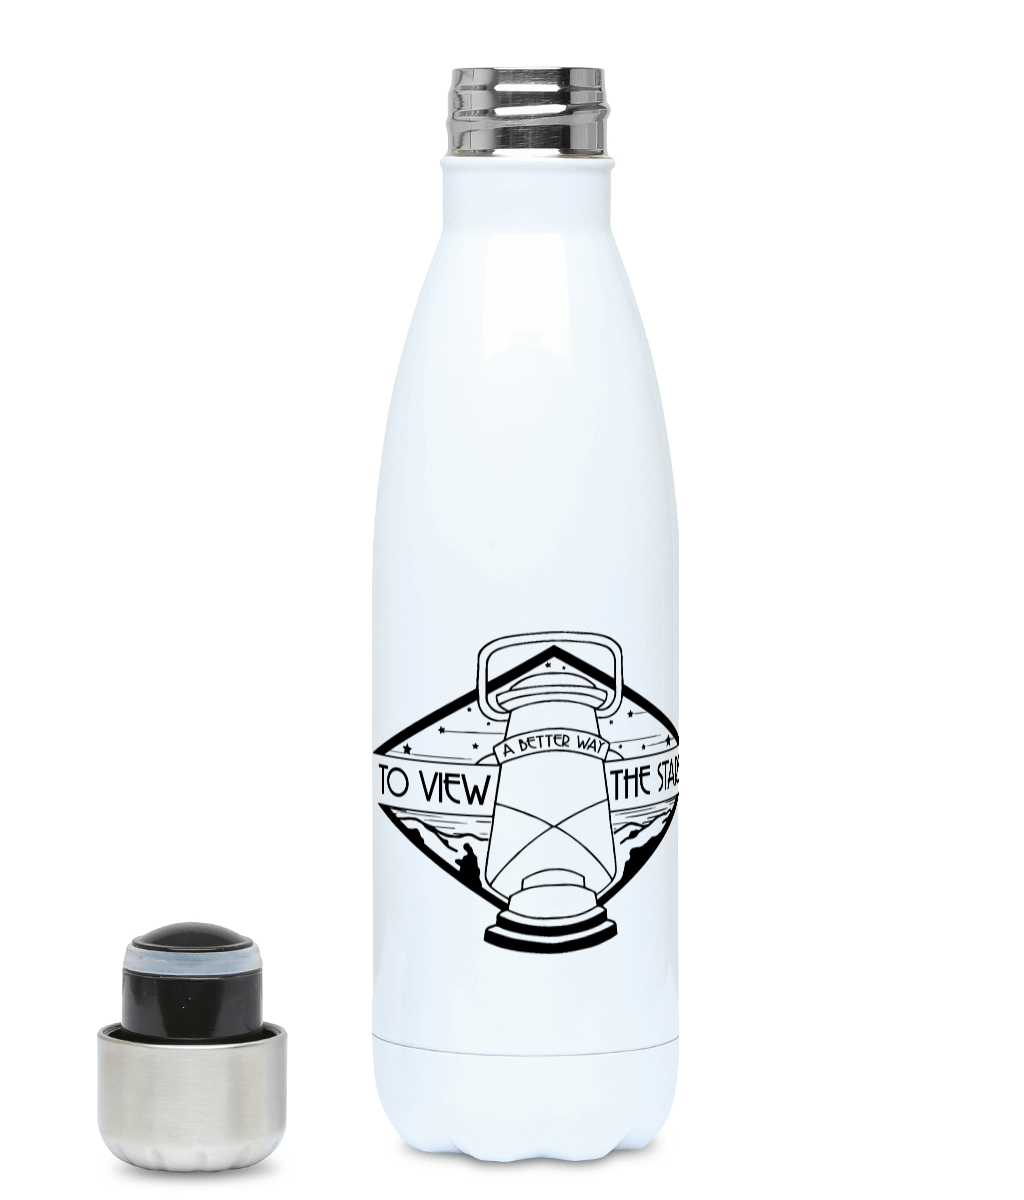 A Better Way To View The Stars - Plastic Free 500ml Water Bottle, Suggested Products, Pen and Ink Studios Adventure Clothing